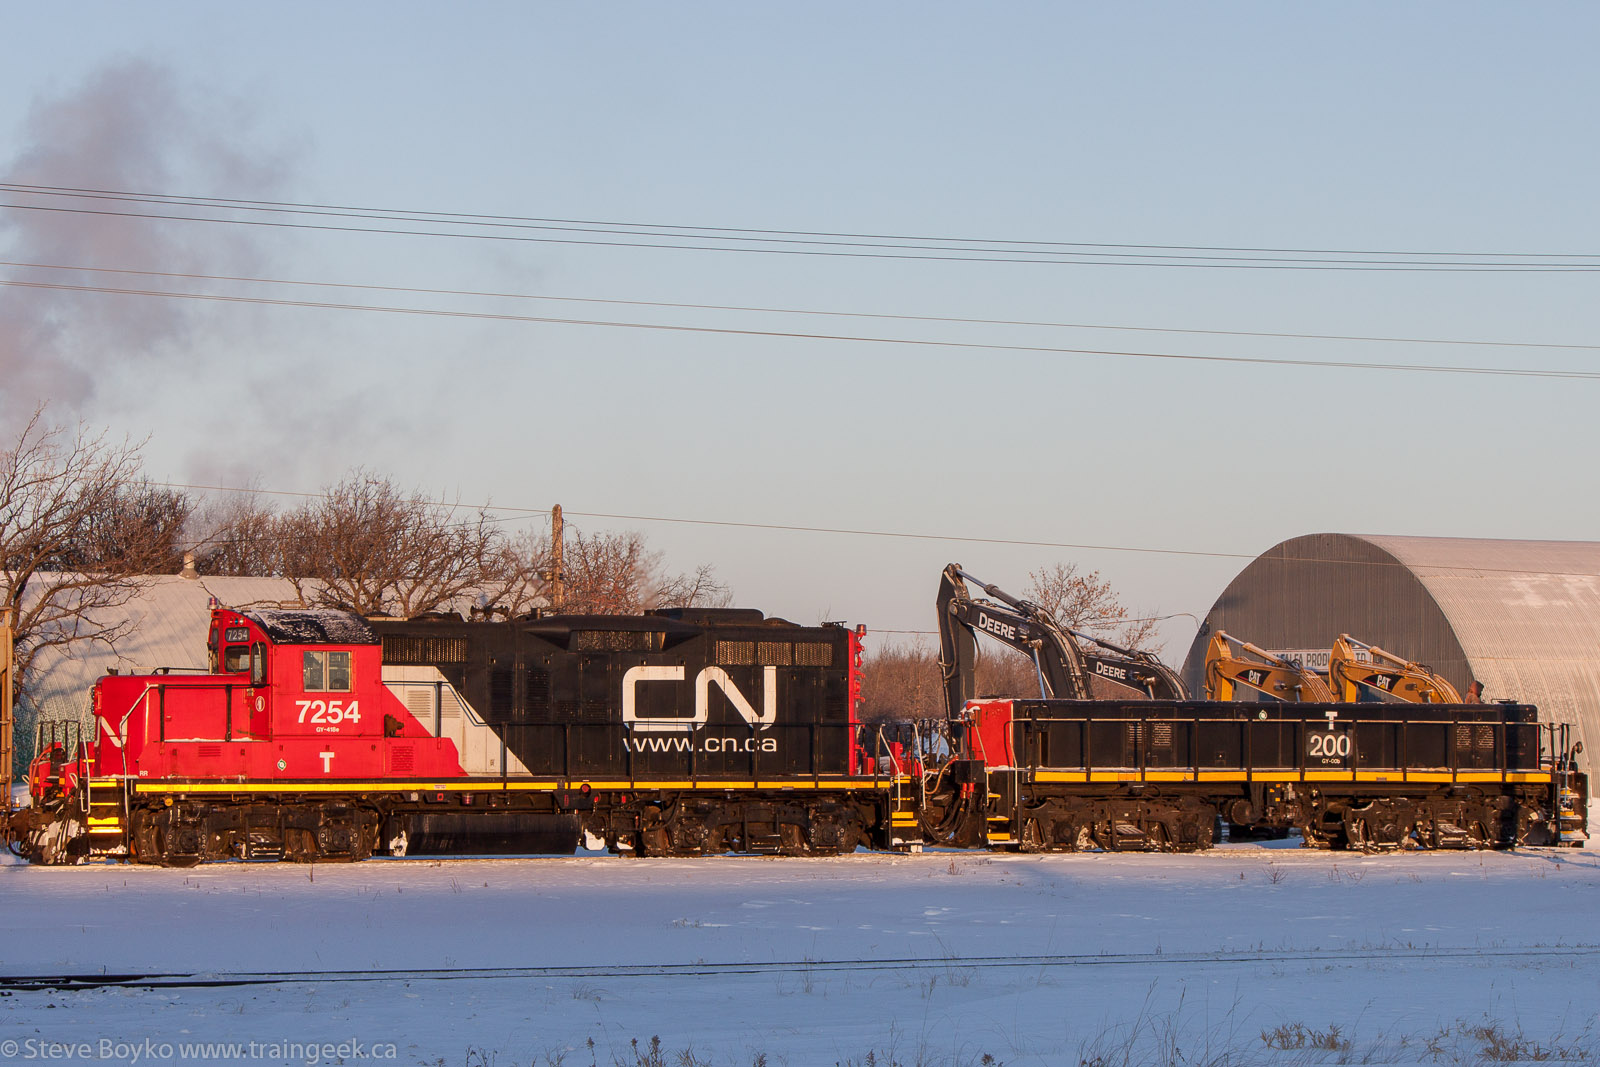 CN 7254 and CN 200 in Winnipeg, MB 2013/01/17